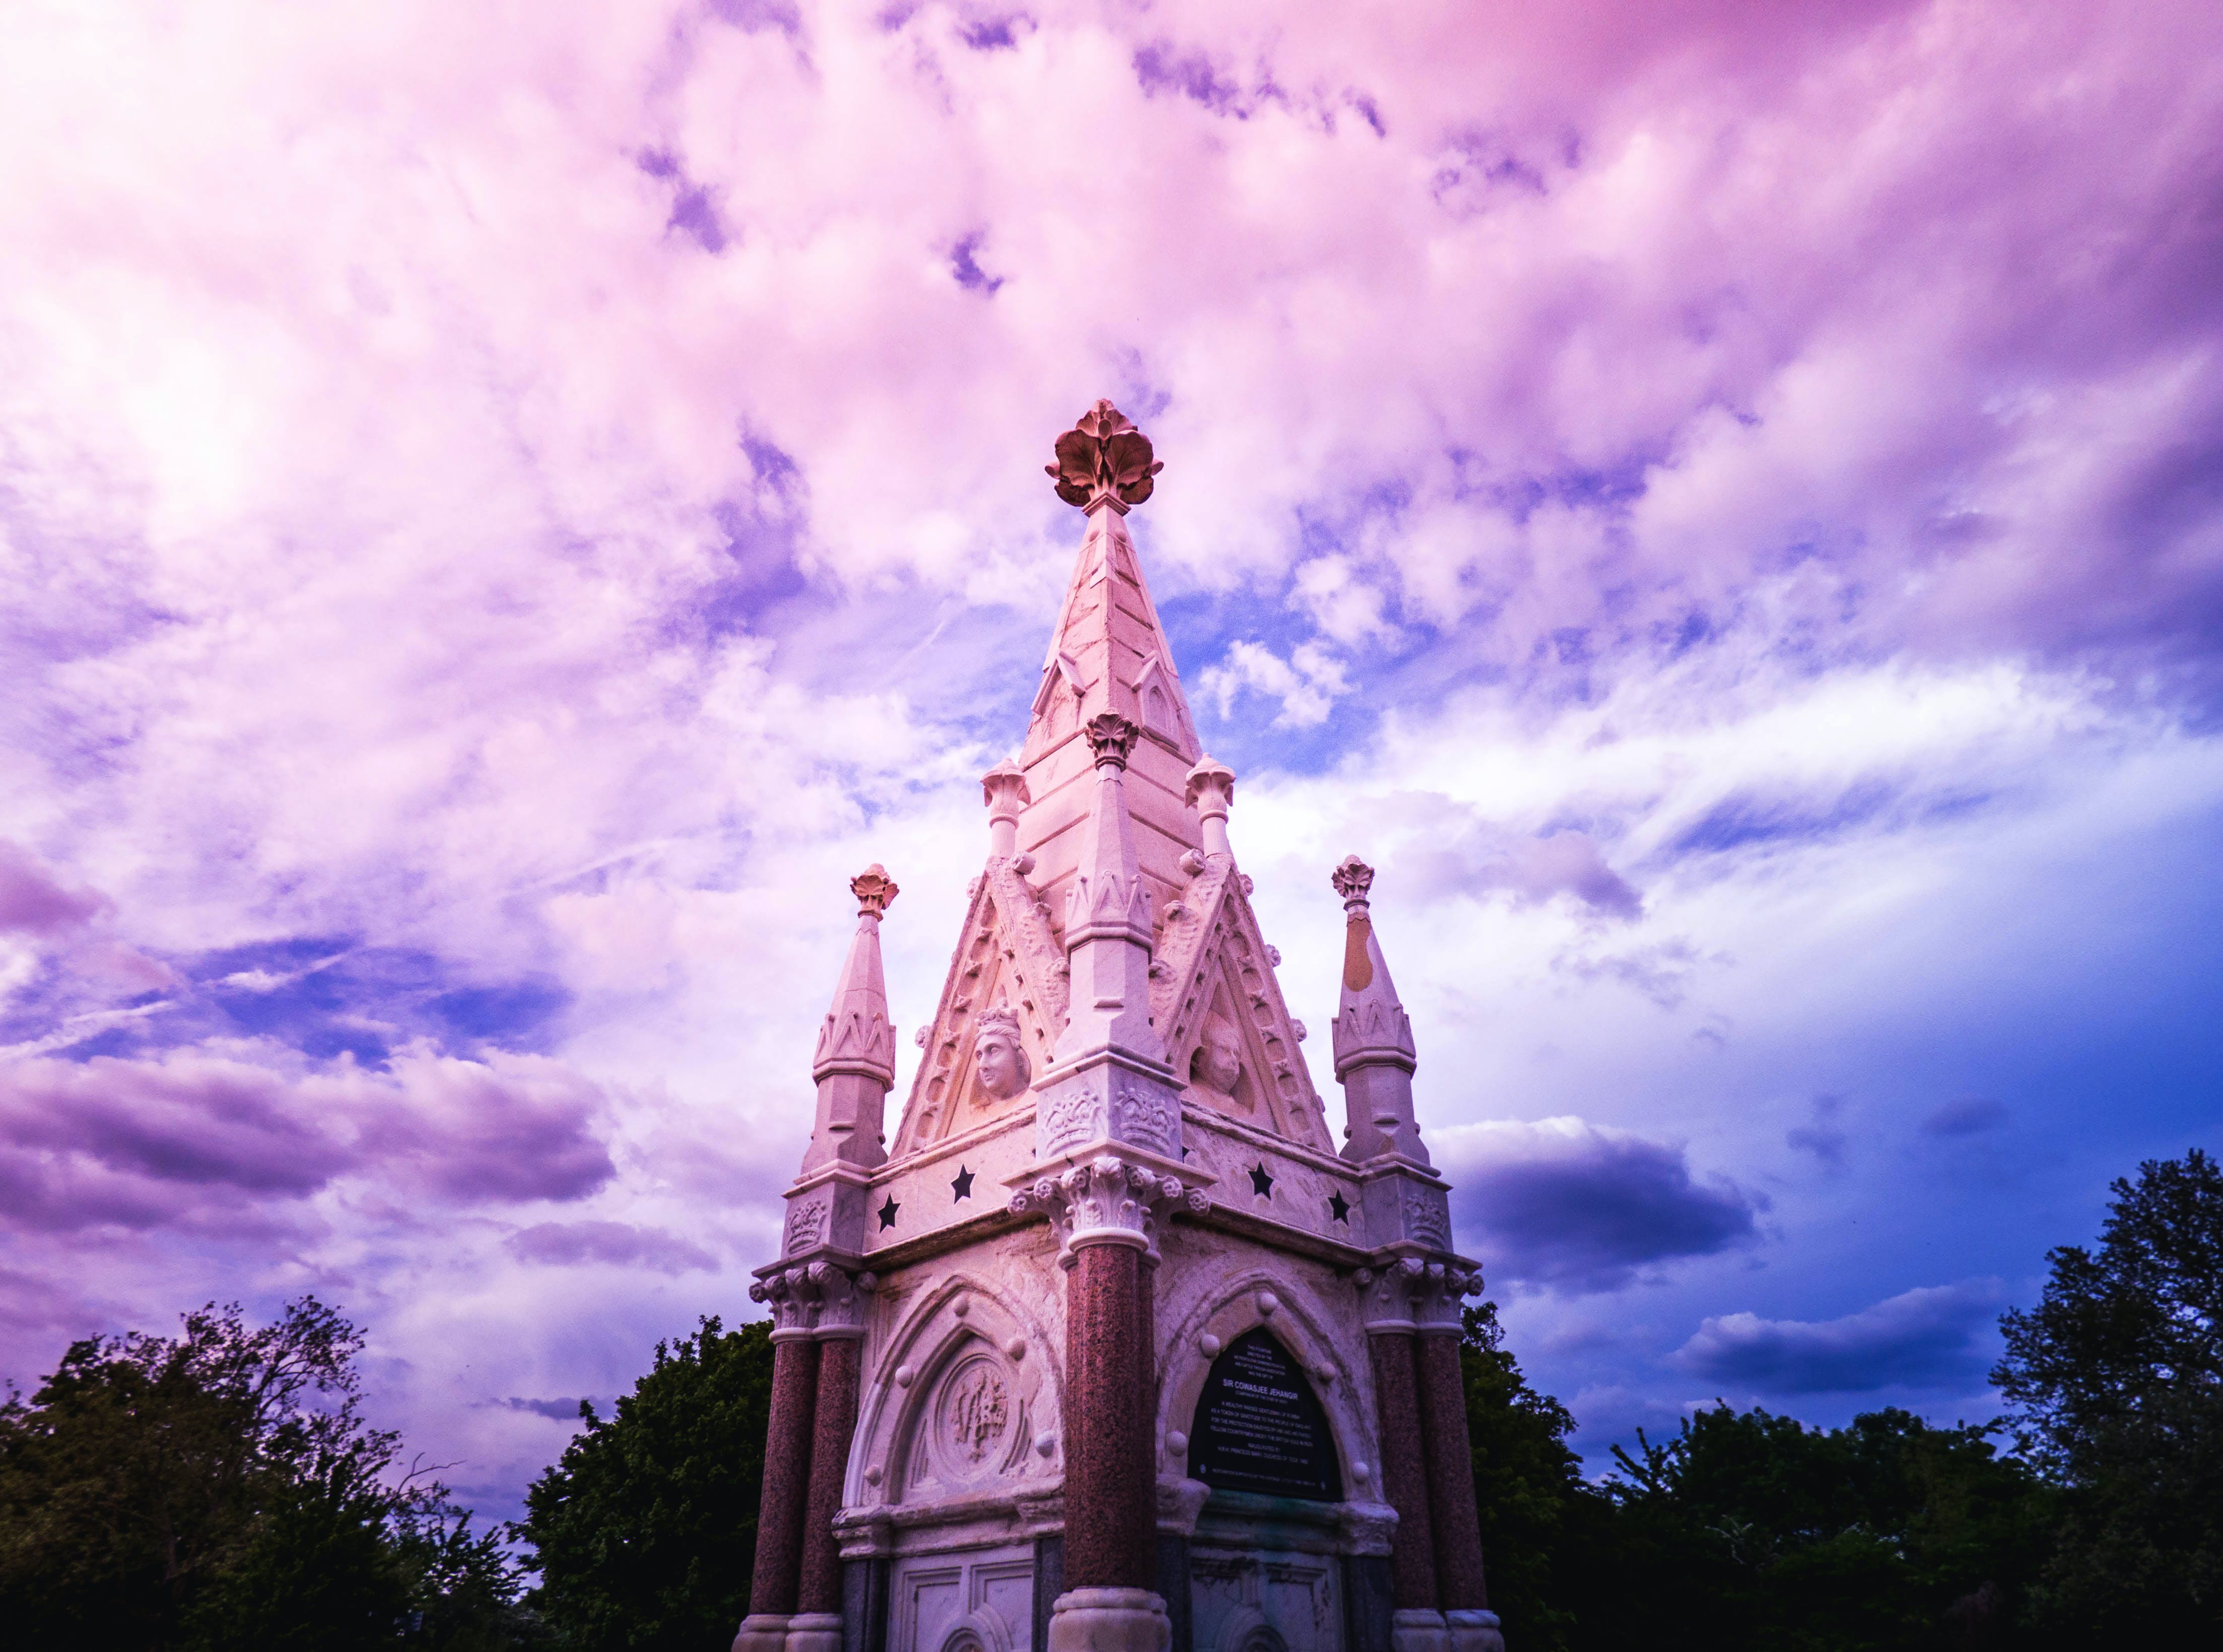 Low Angle Photography of White and Brown Temple